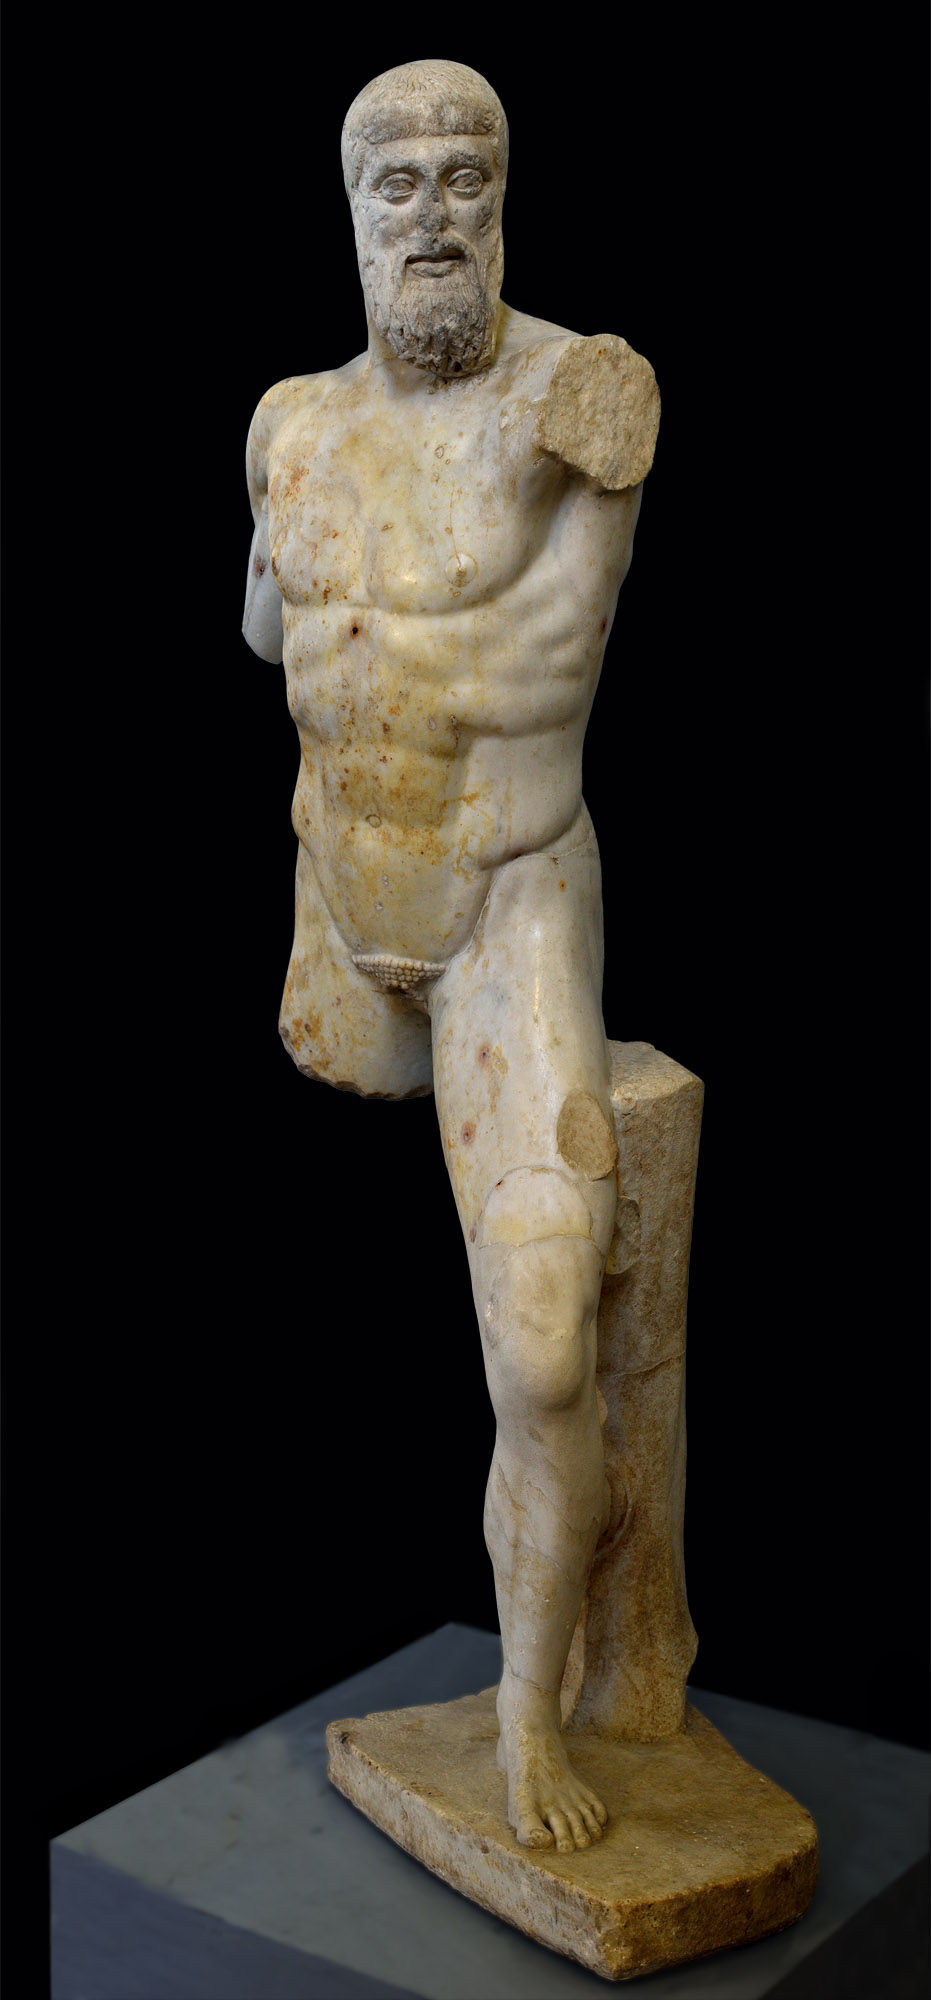 Aristogeiton (part of a statuary group of the Tyrannicides). Roman copy of the 1st century BCE after a Kritios and Nesiotes model of 477—476 BCE. Inv. No. MC 2404. Rome, Capitoline Museums, Museum Montemartini (Centrale Montemartini), II. 58